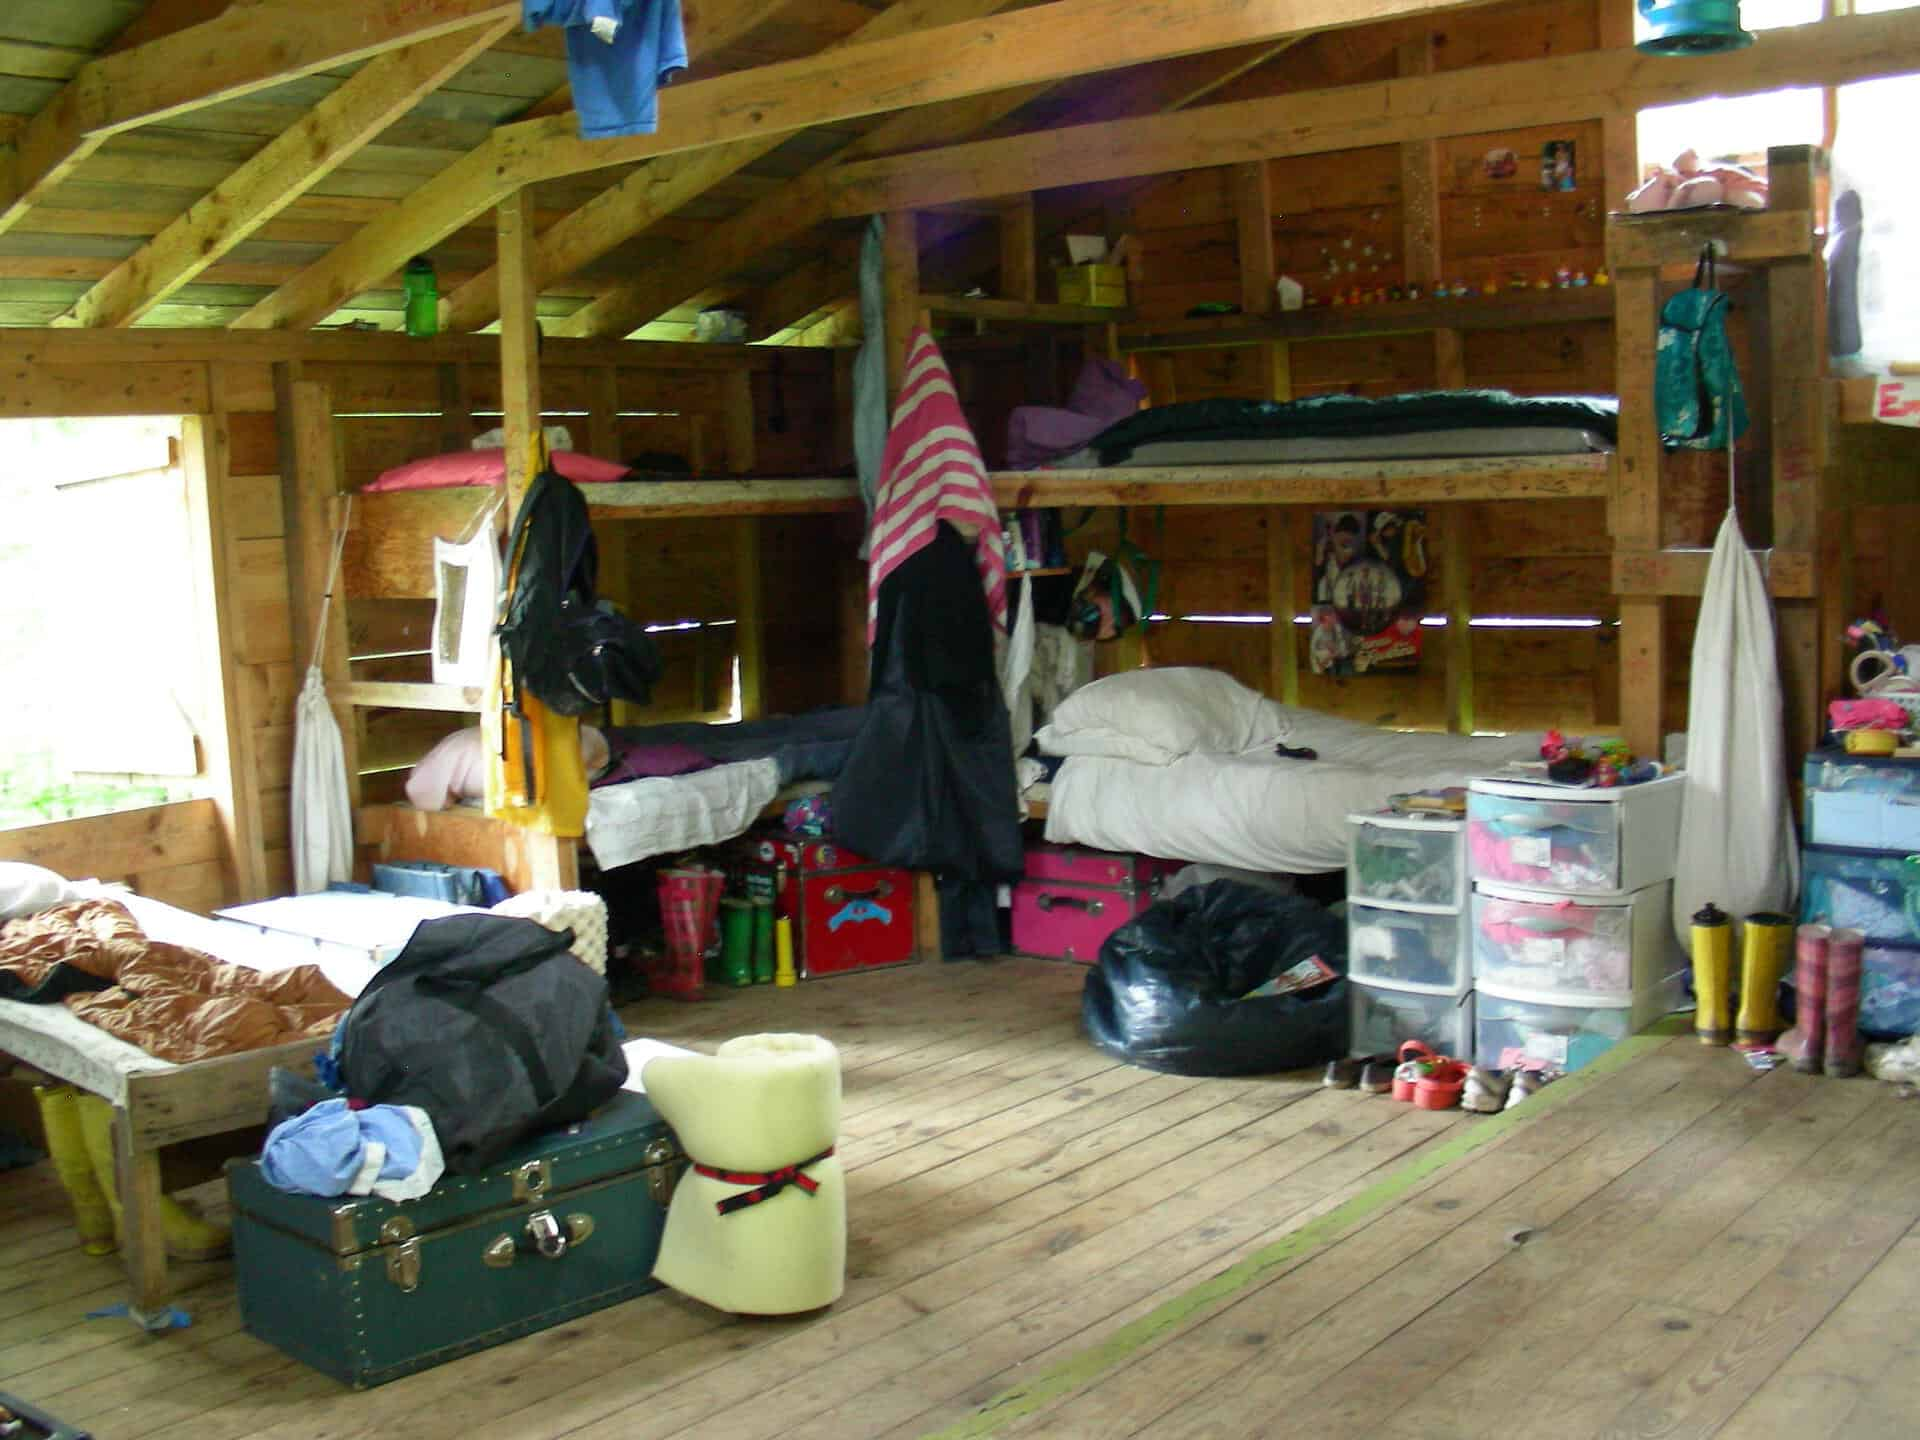 6 Signs Your Kid is Ready for Sleepaway Camp